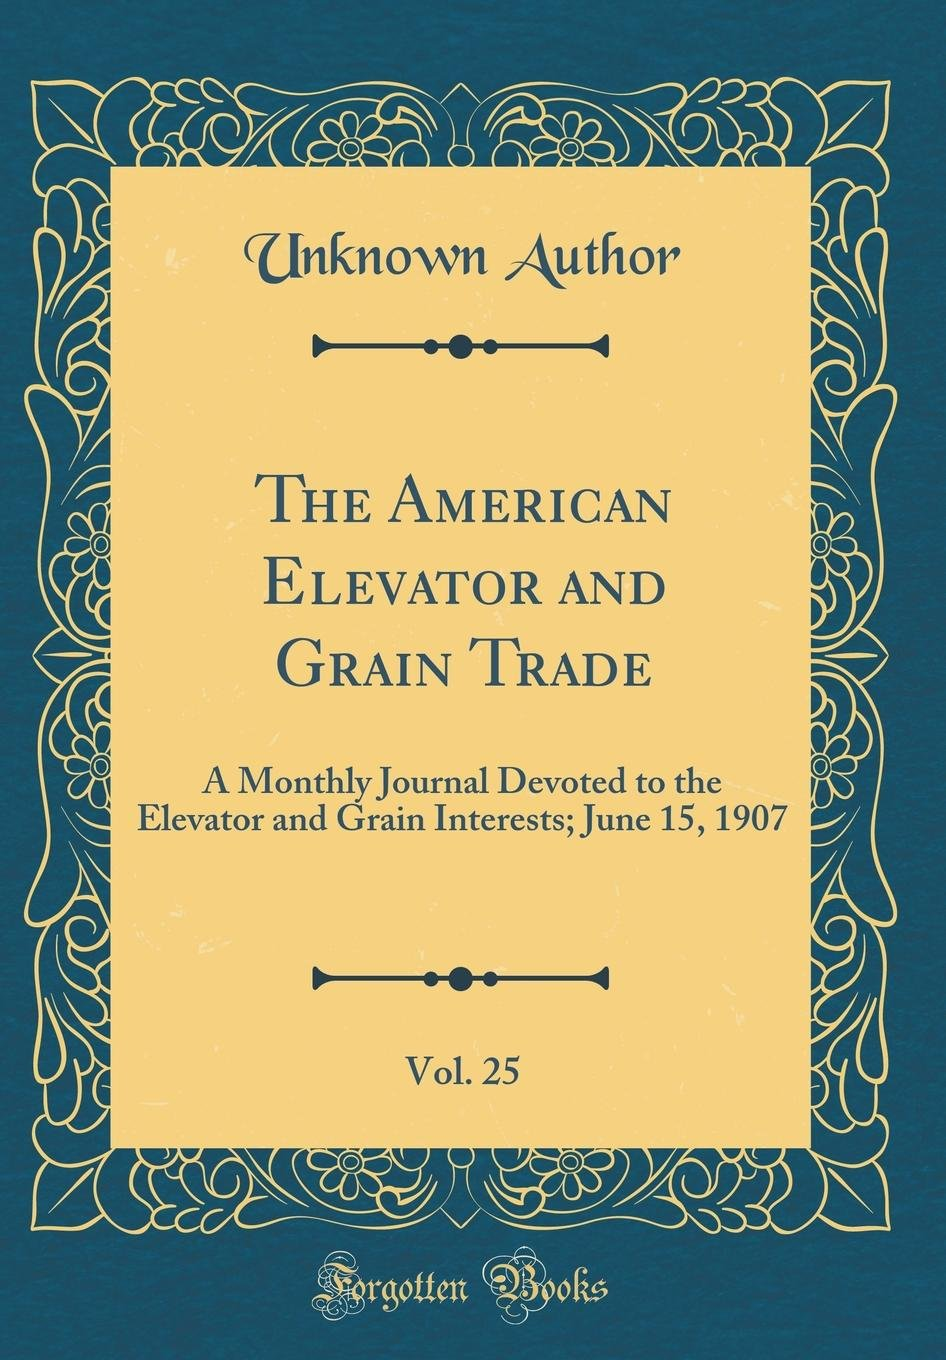 Download The American Elevator and Grain Trade, Vol. 25: A Monthly Journal Devoted to the Elevator and Grain Interests; June 15, 1907 (Classic Reprint) PDF Text fb2 ebook